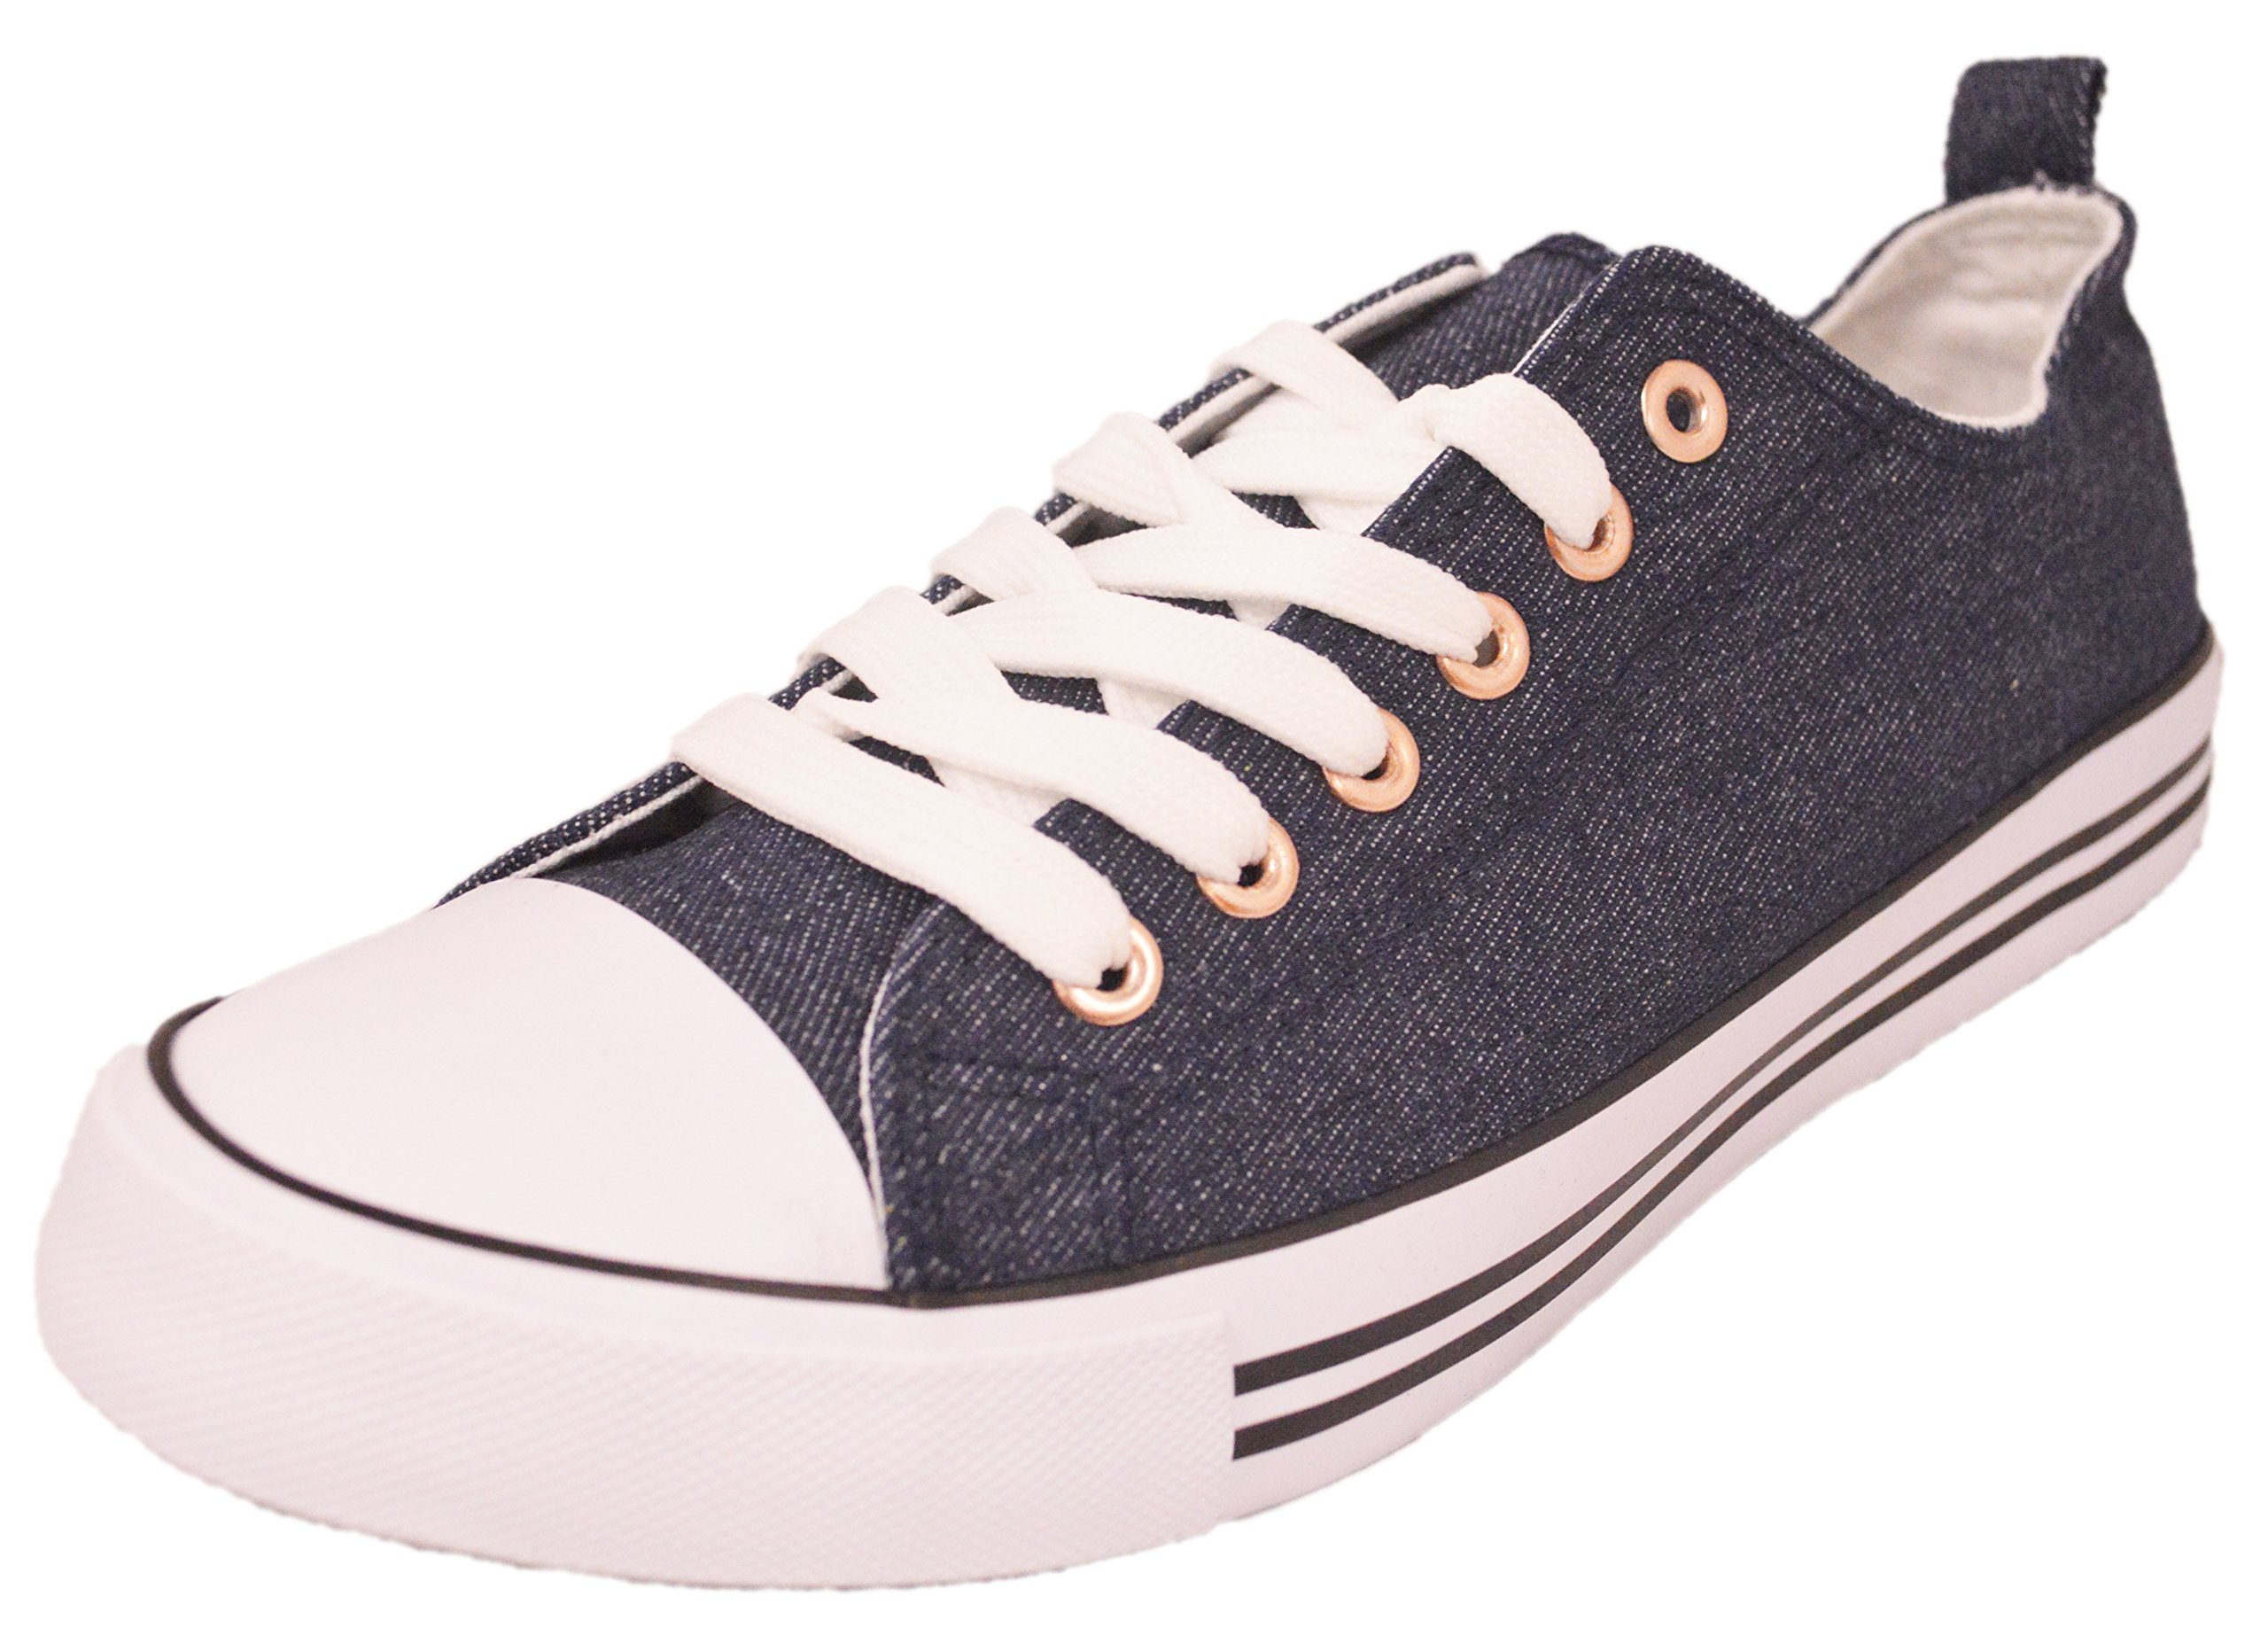 Shop Pretty Girl Women's Casual Canvas Shoes Solid Colors Low Top Lace up Flat Fashion Sneakers Version 2 Denim with Rose 10